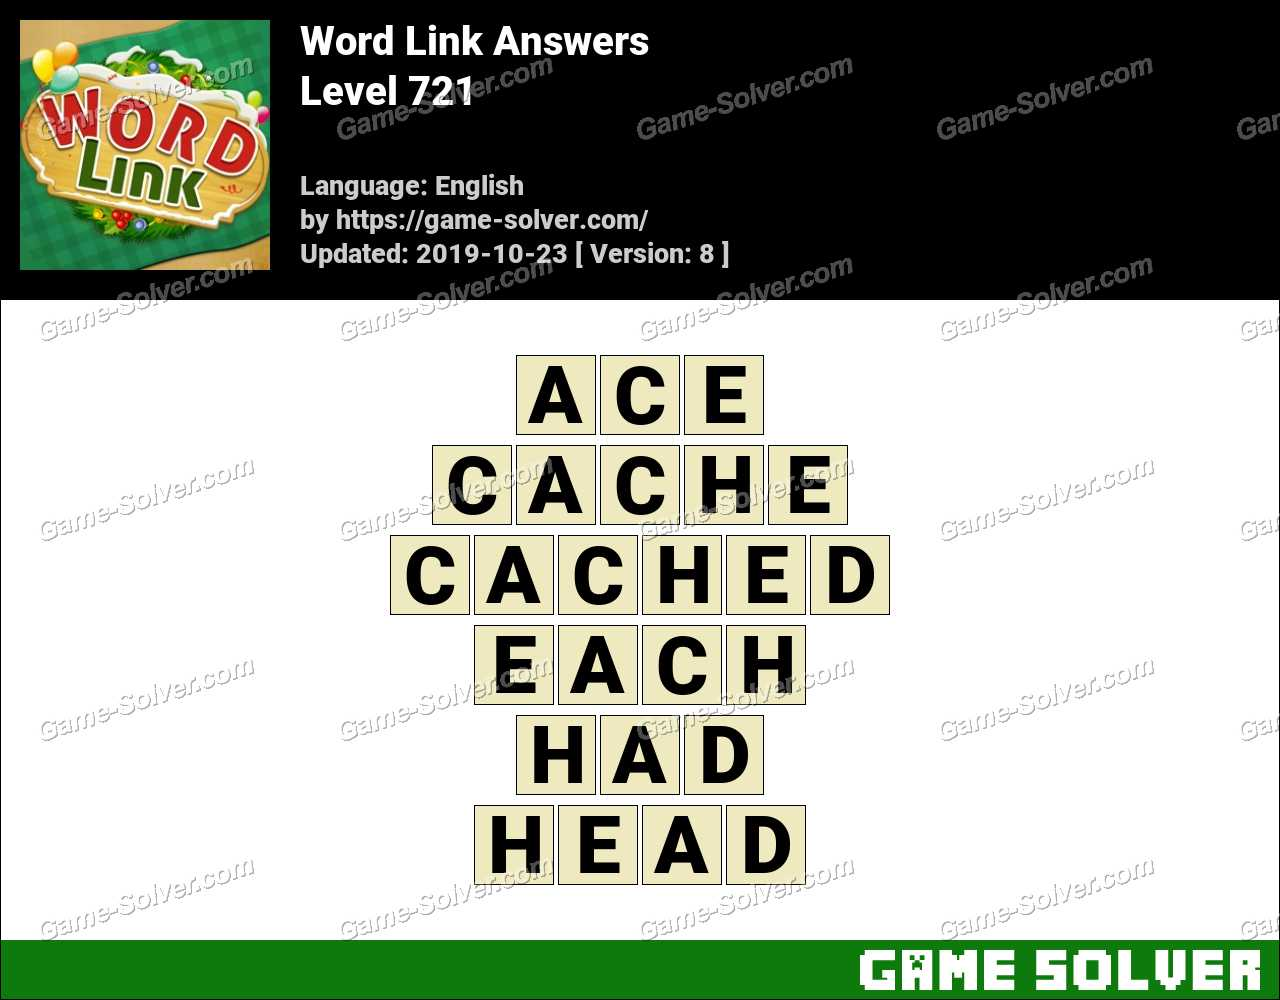 Word Link Level 721 Answers